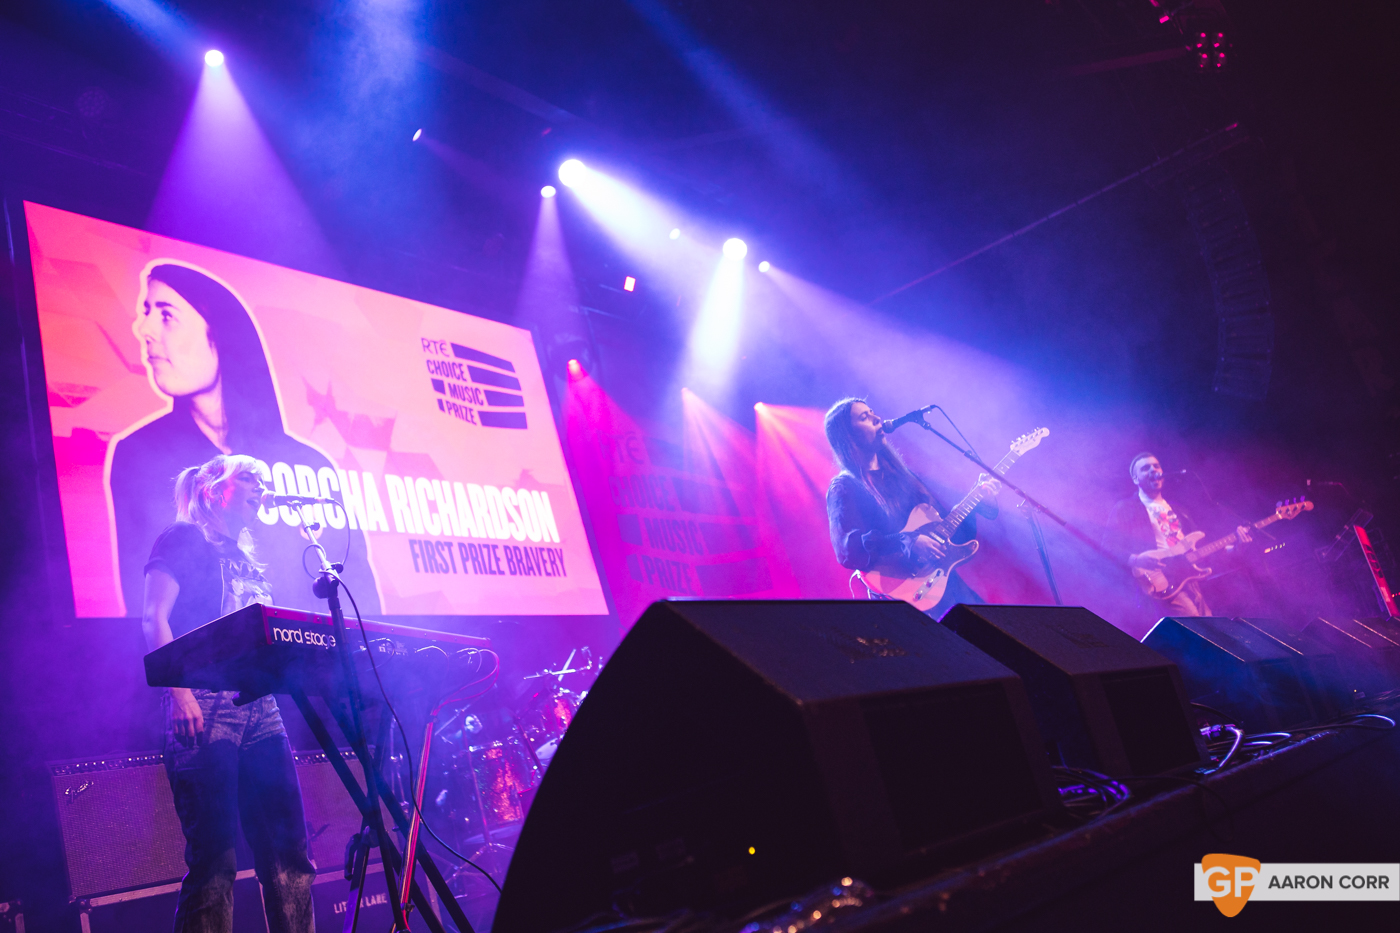 Sorcha Richardson at Choice Music Prize 2020 in Vicar Street, Dublin on 05-Mar-20 by Aaron Corr-2629